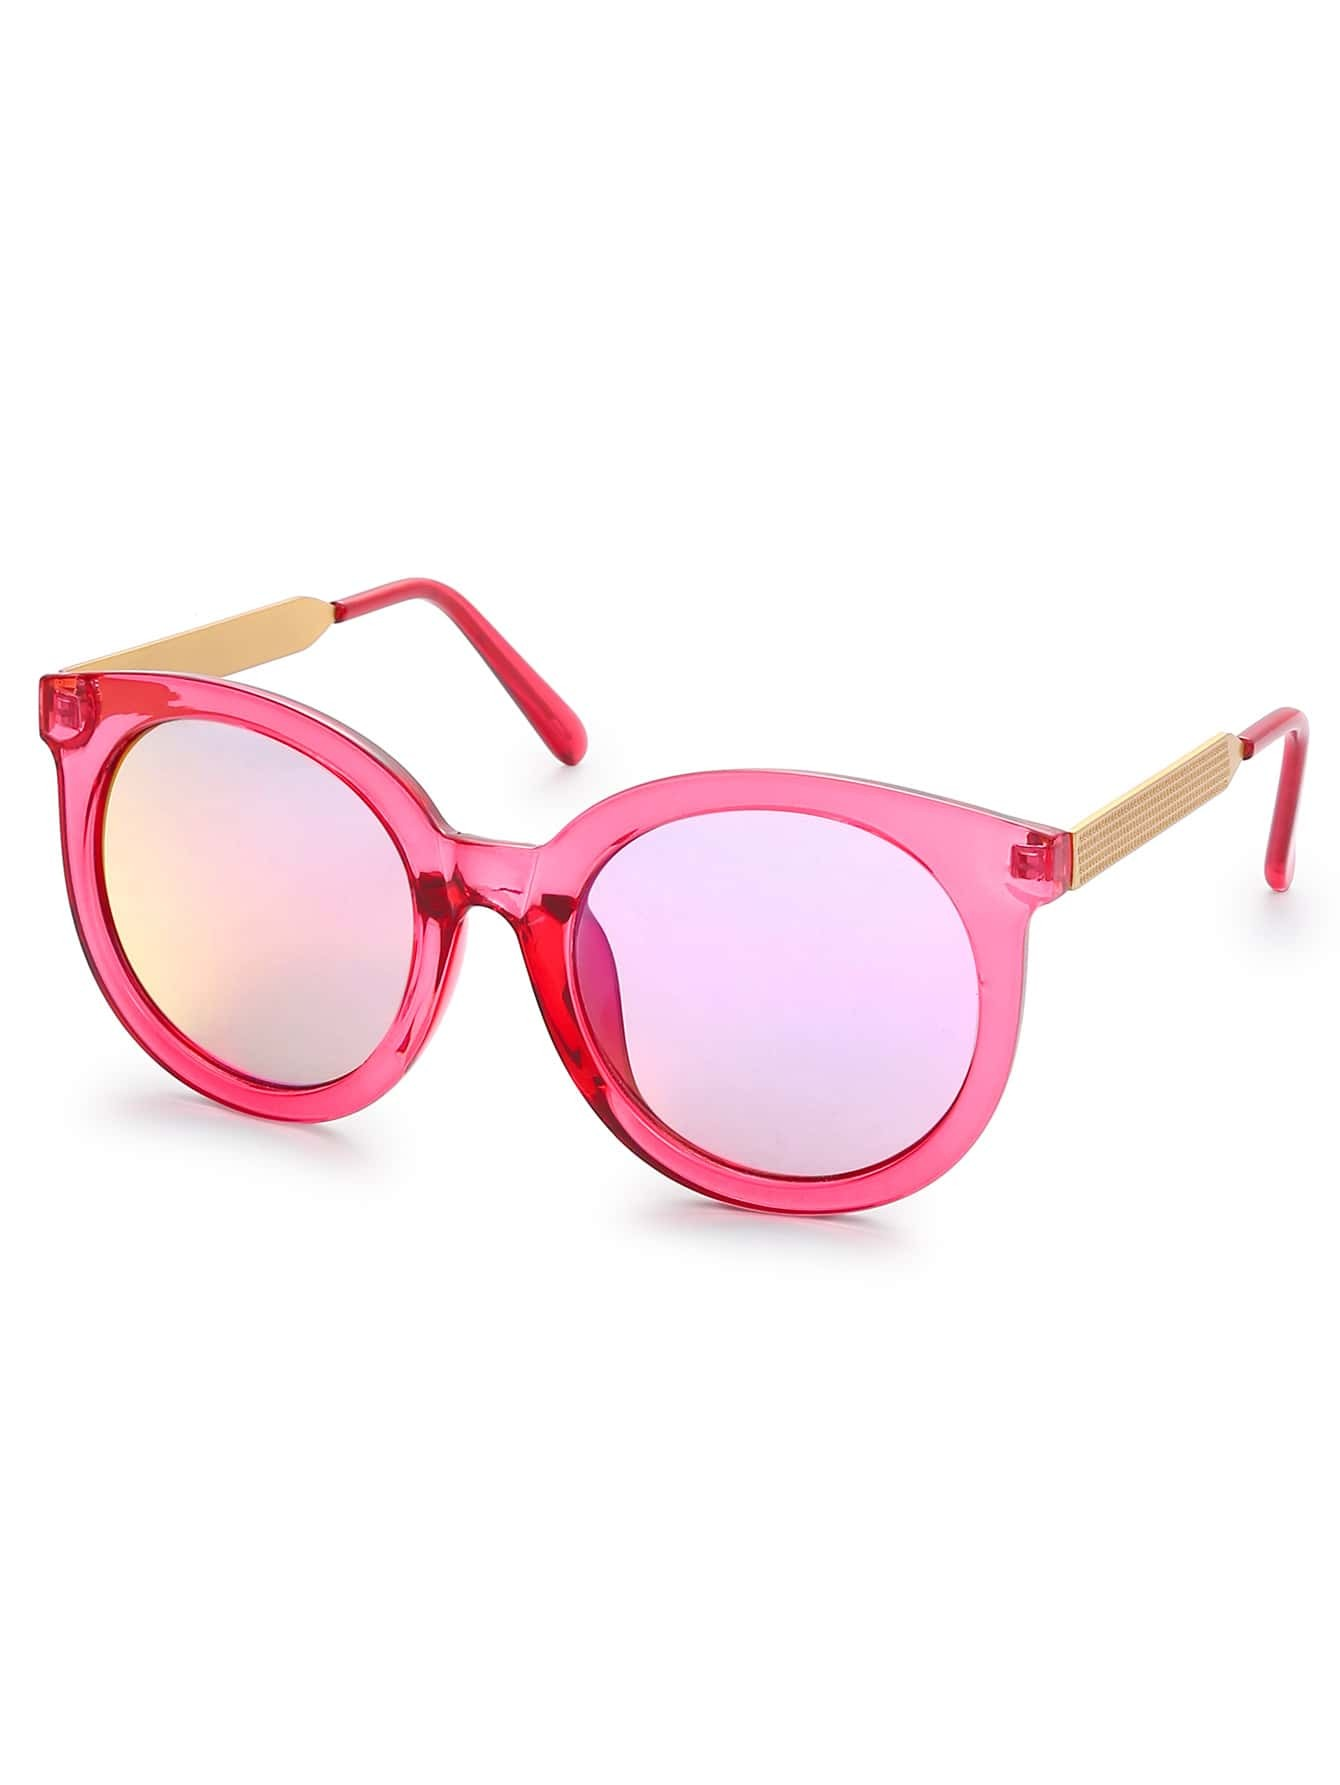 pink clear frame iridescent lens sunglasses